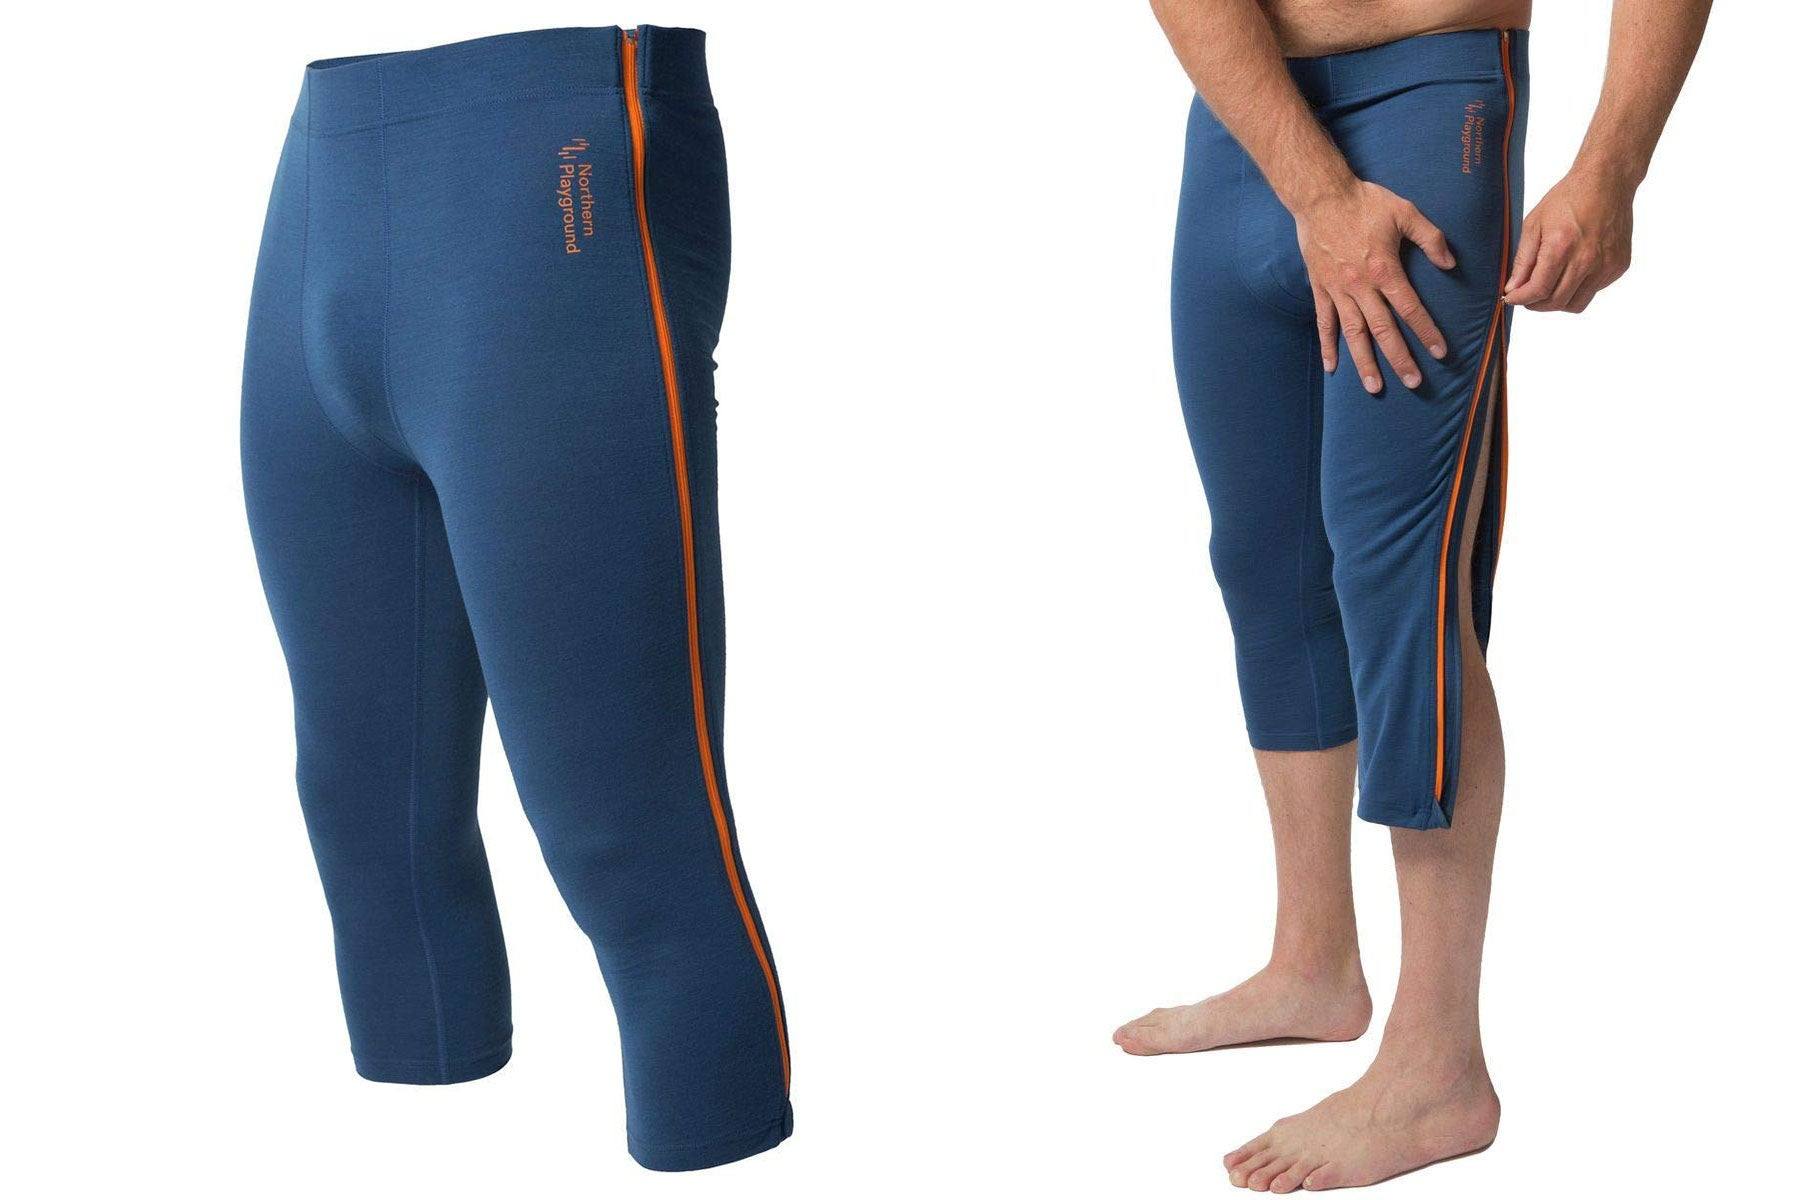 ziplong pants, zipped and unzipped